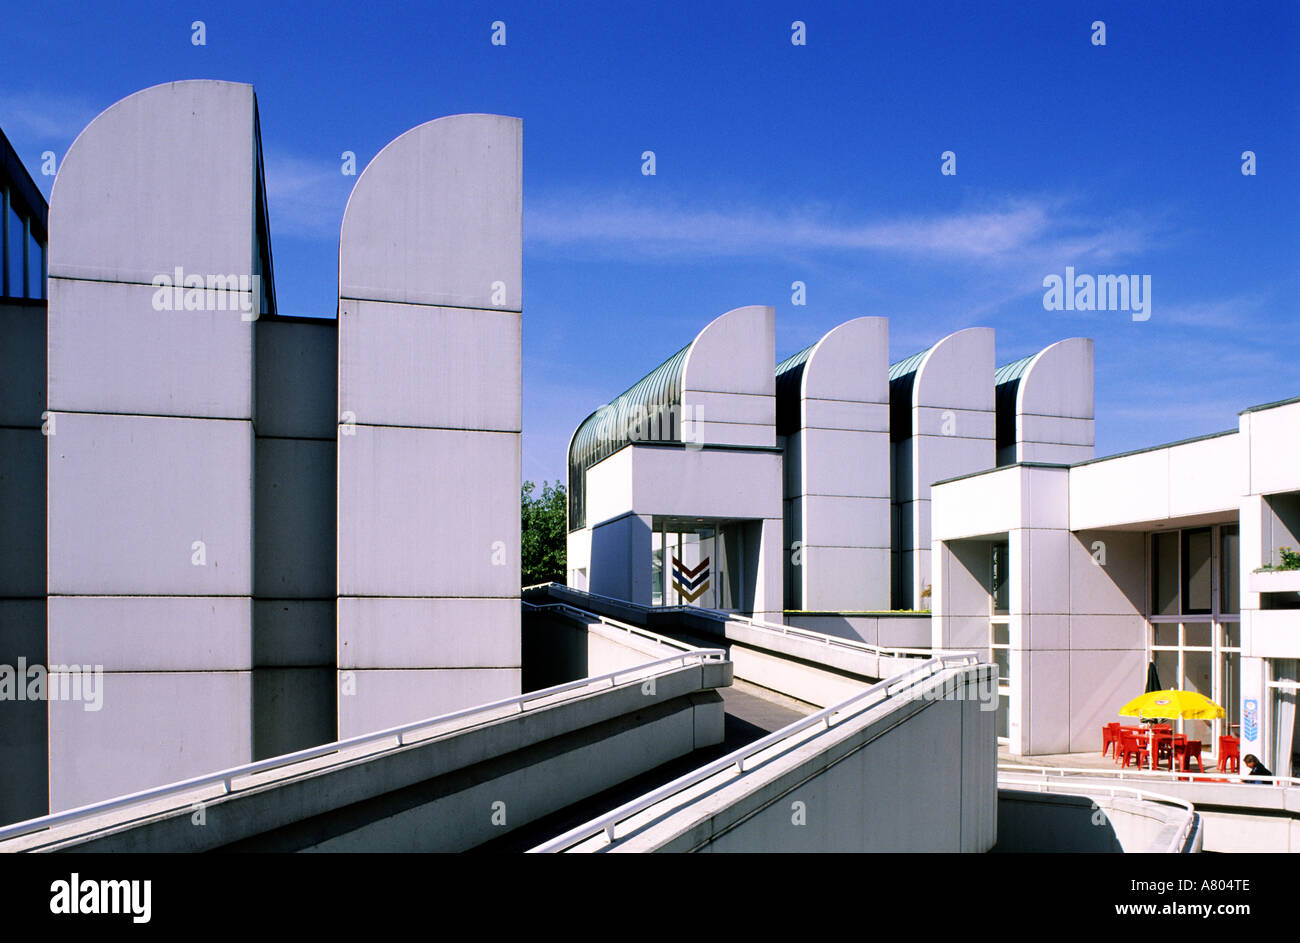 germany berlin bauhaus archiv museum of design stock photo royalty free image 6824845 alamy. Black Bedroom Furniture Sets. Home Design Ideas